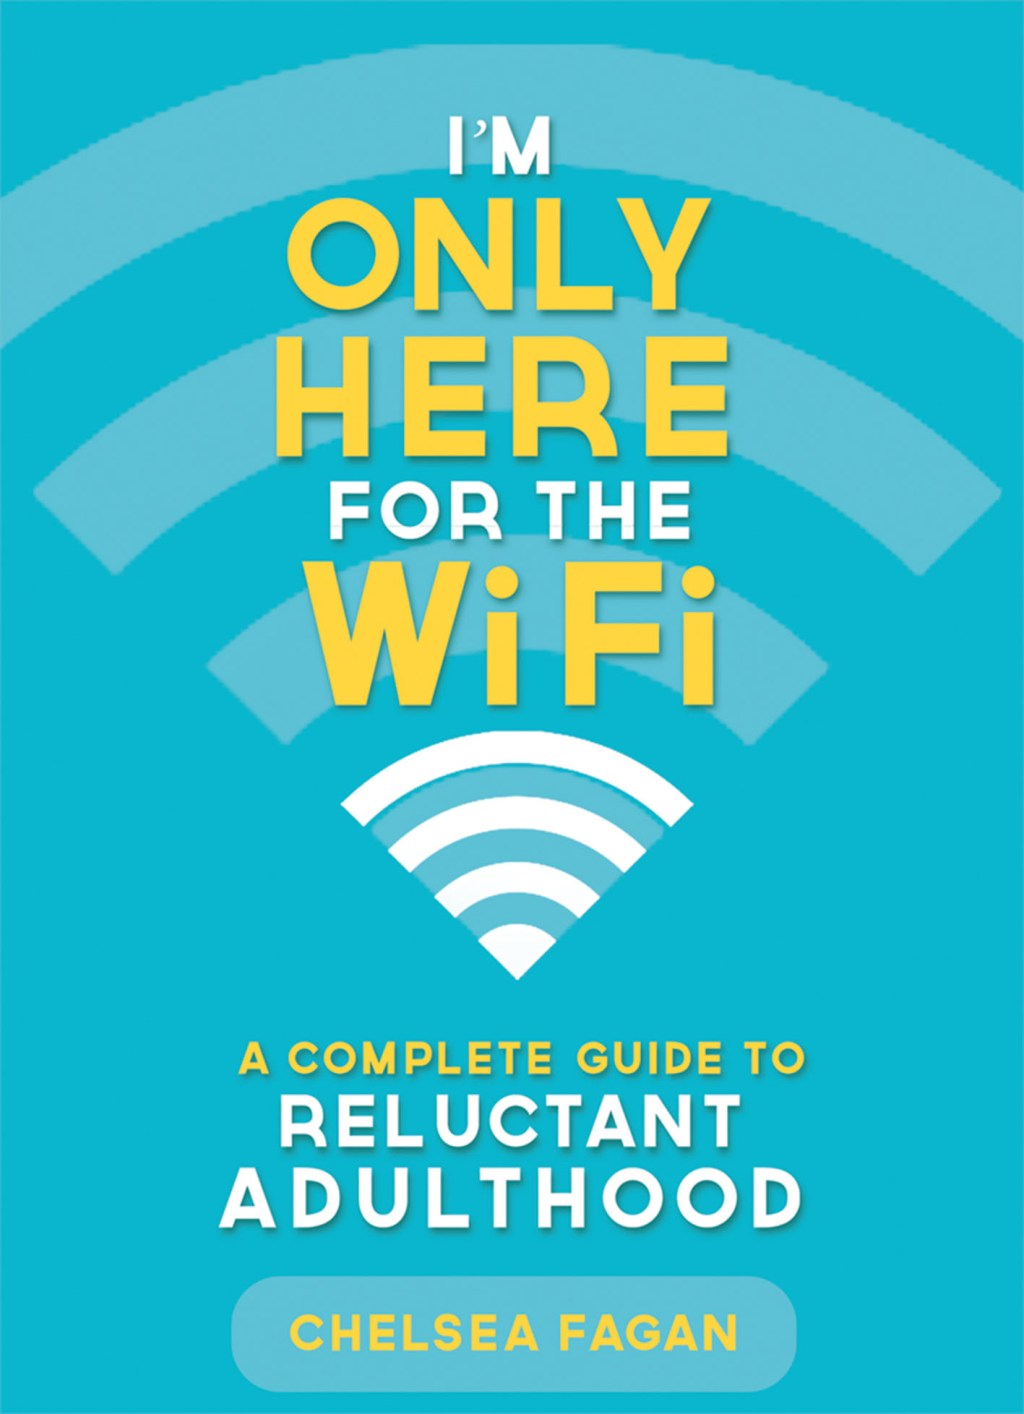 """Ten Opening Paragraphs for a Review of Chelsea Fagan's """"I'm Only Here for the WiFi"""""""